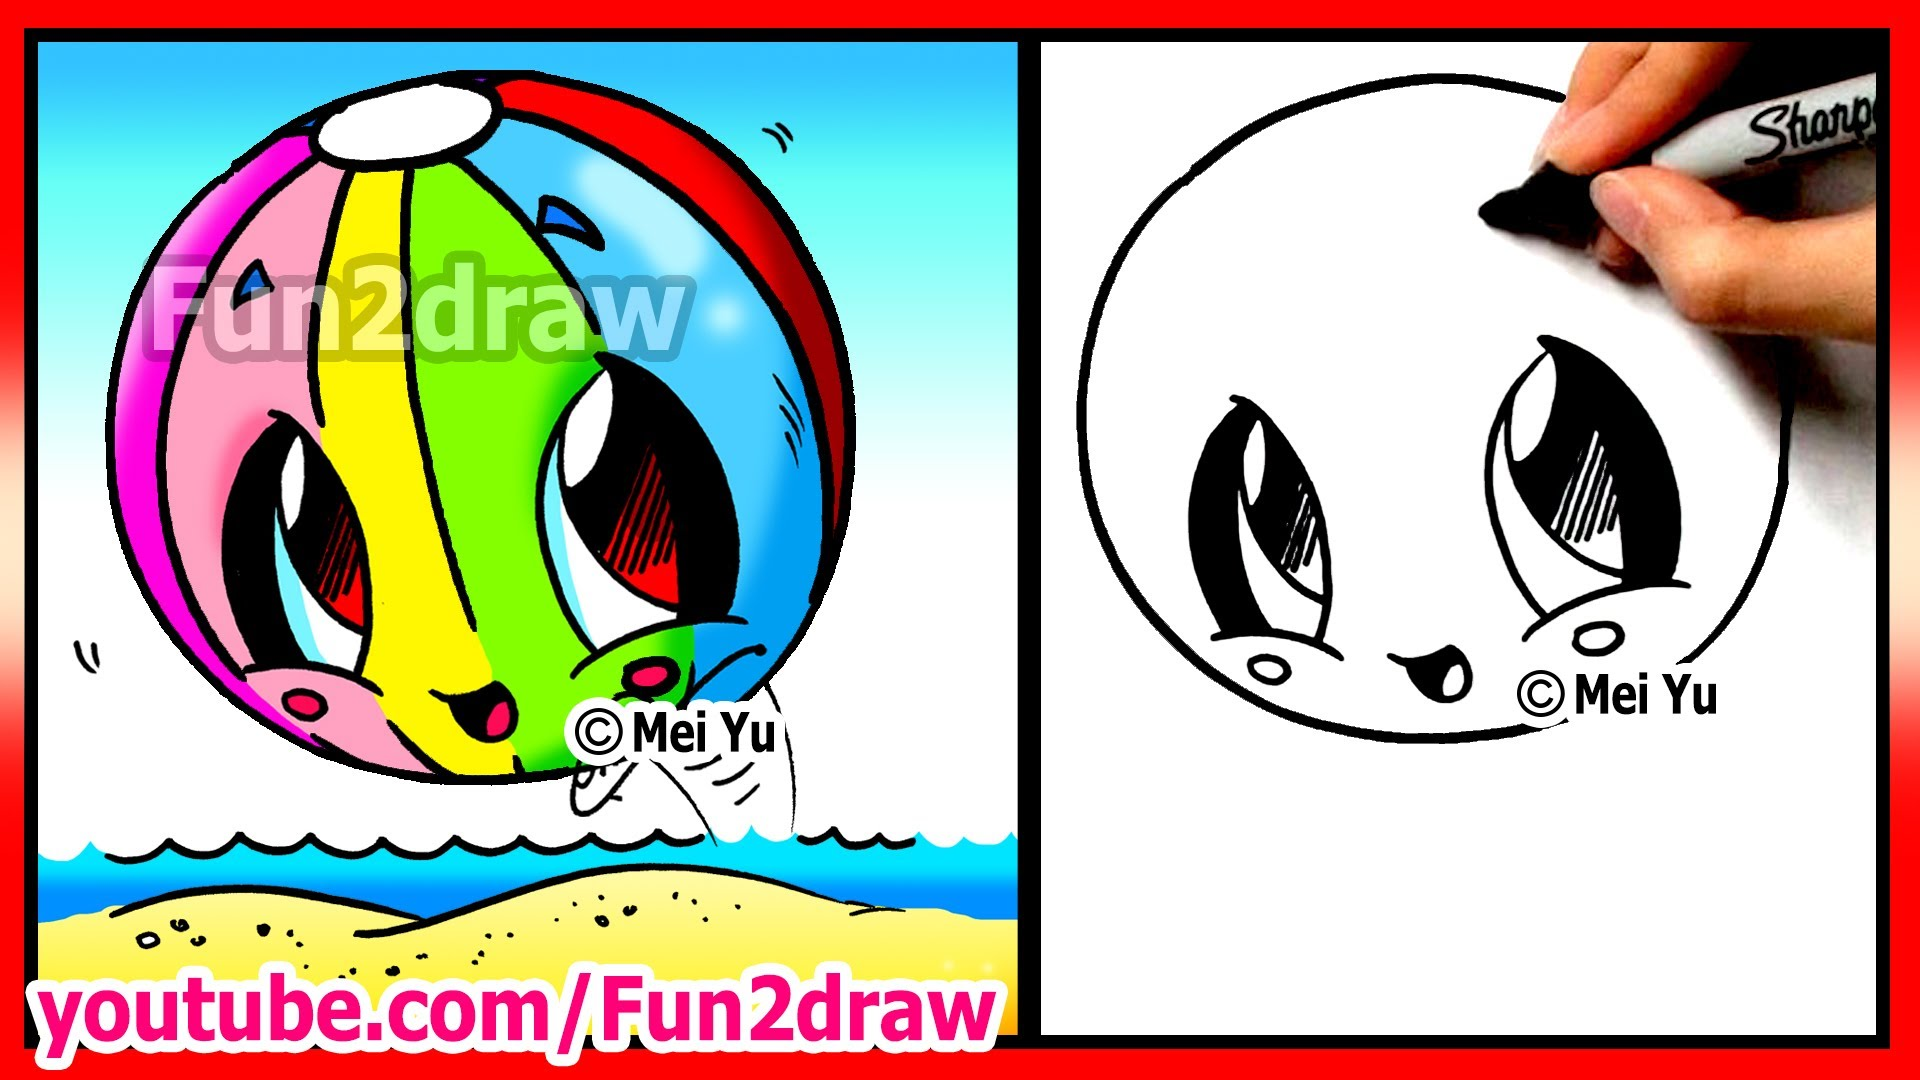 Drawn tacos delicious Lessons to How Fun2draw Ball